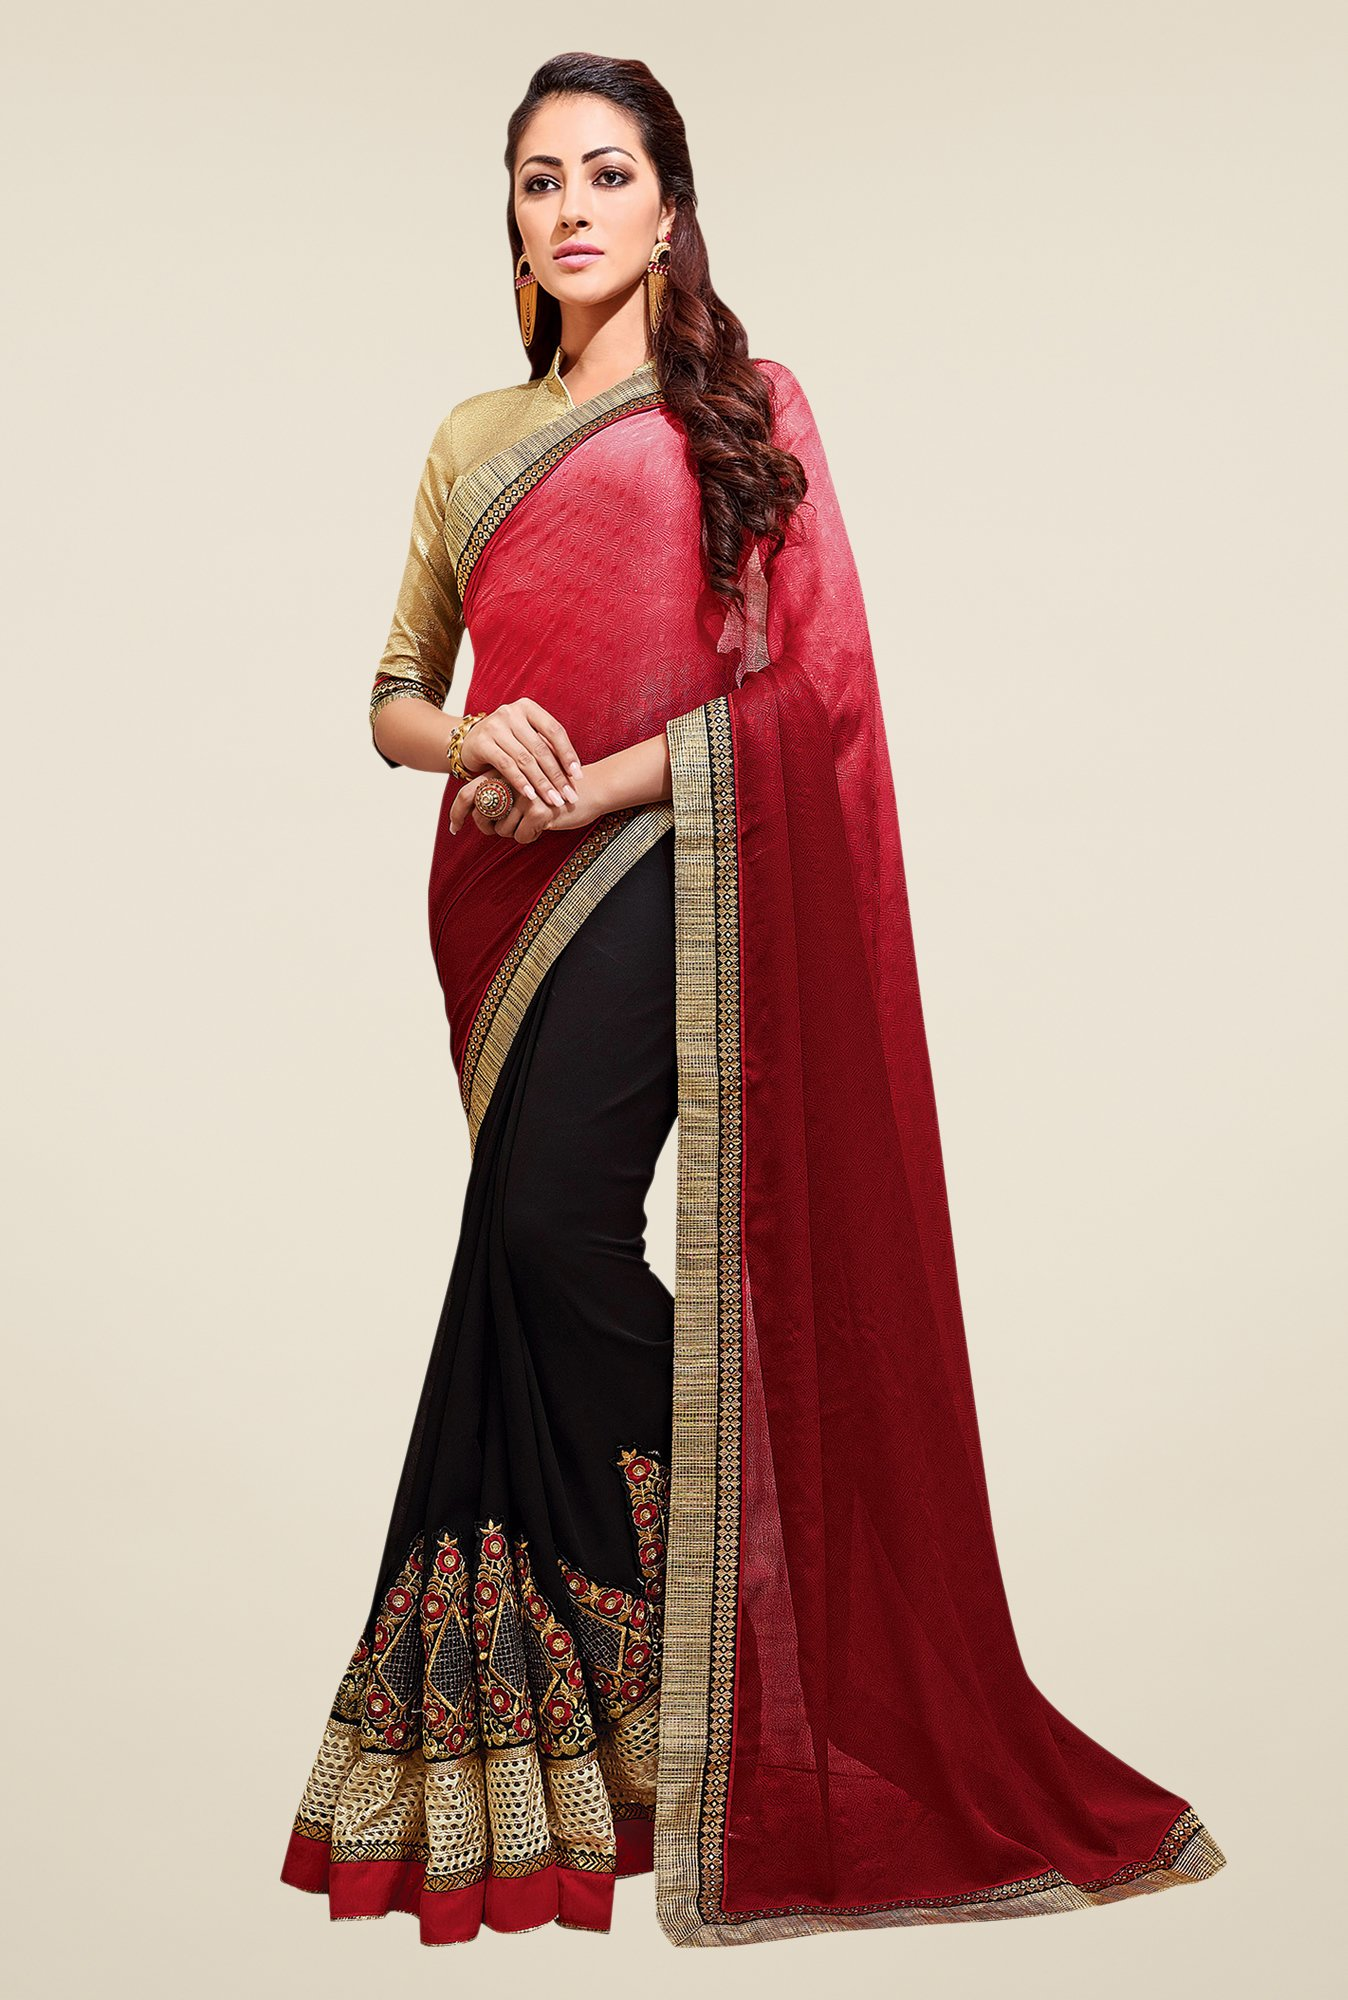 Shonaya Black & Red Embroidered Saree